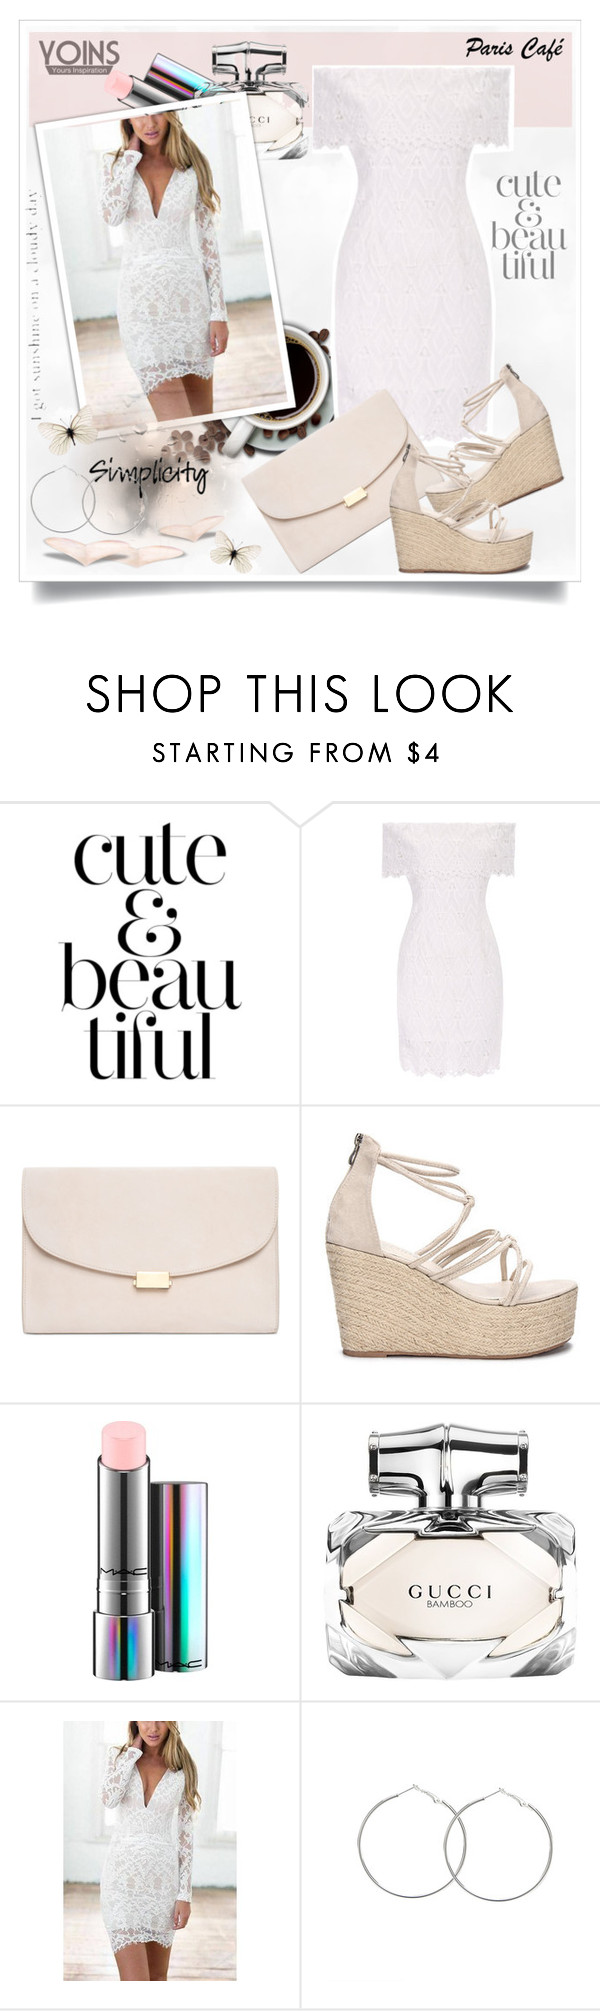 """""""Yoins135"""" by sneky ❤ liked on Polyvore featuring Mansur Gavriel, MAC Cosmetics, Gucci, yoins, yoinscollection and loveyoins"""